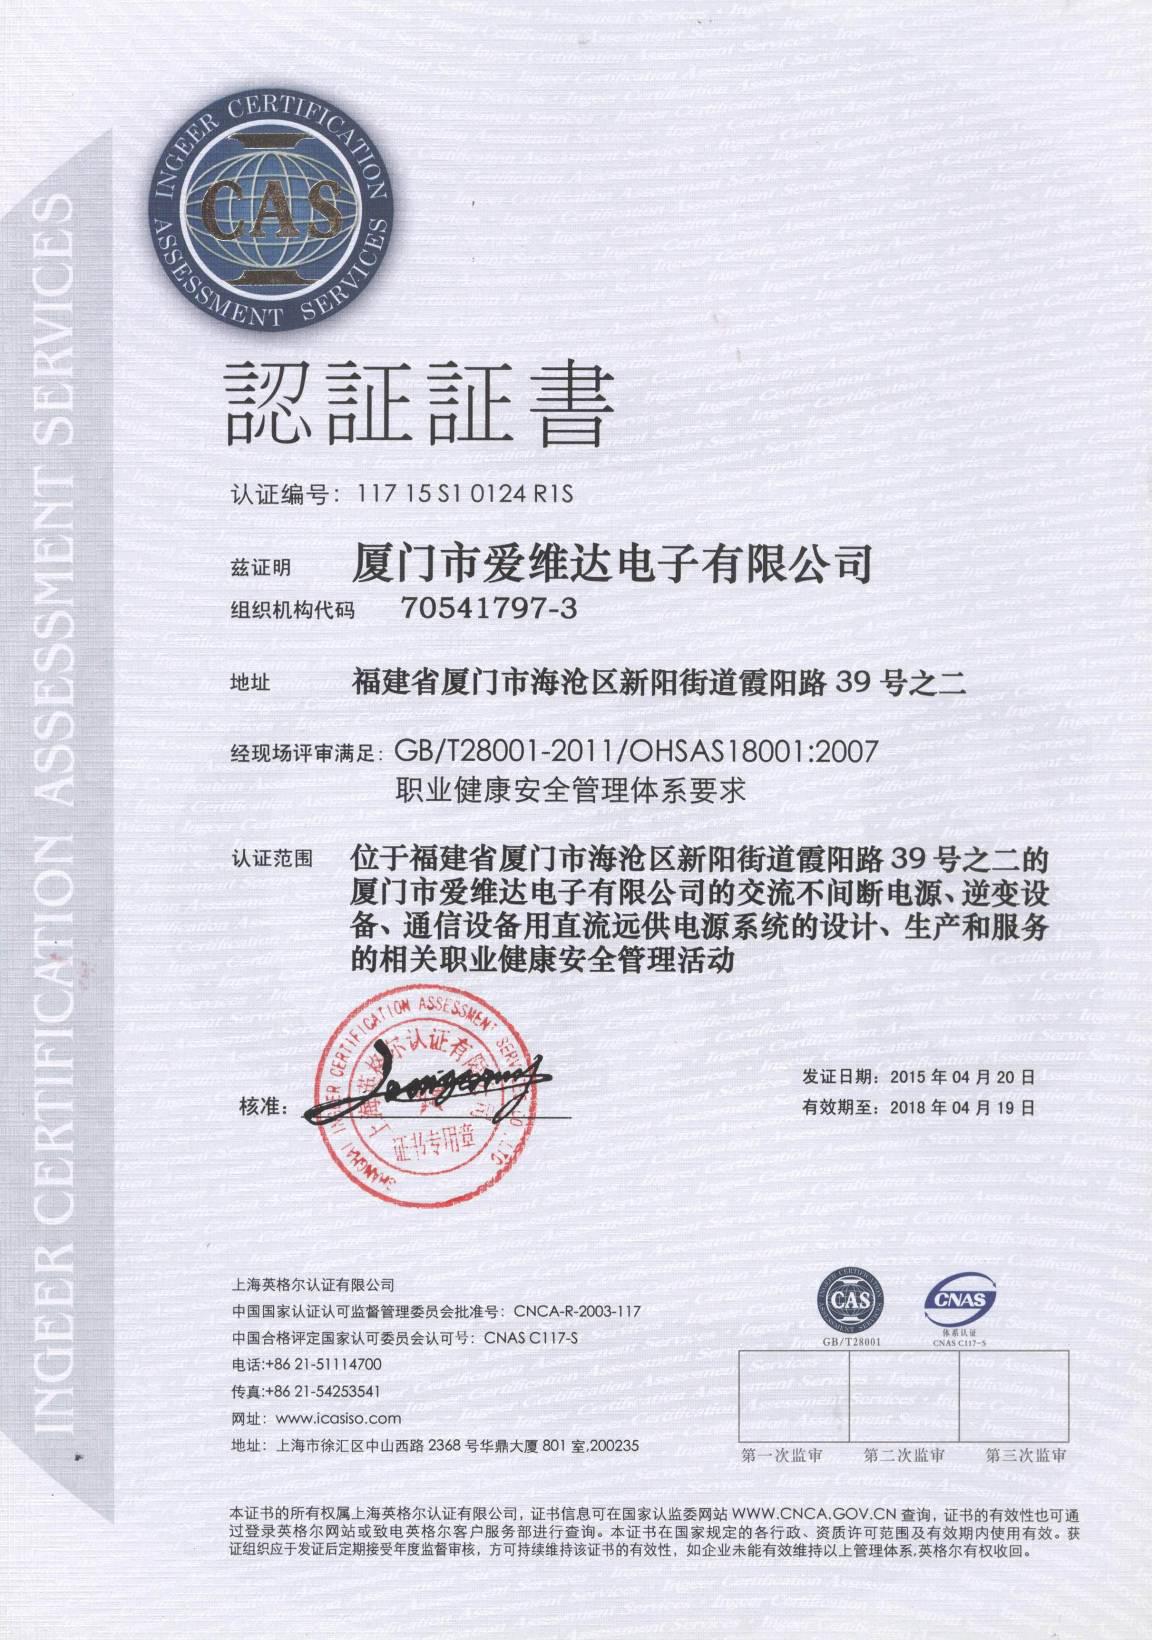 Κίνα Beijing Chuanglong Century Science & Technology Development Co., Ltd. Πιστοποιήσεις